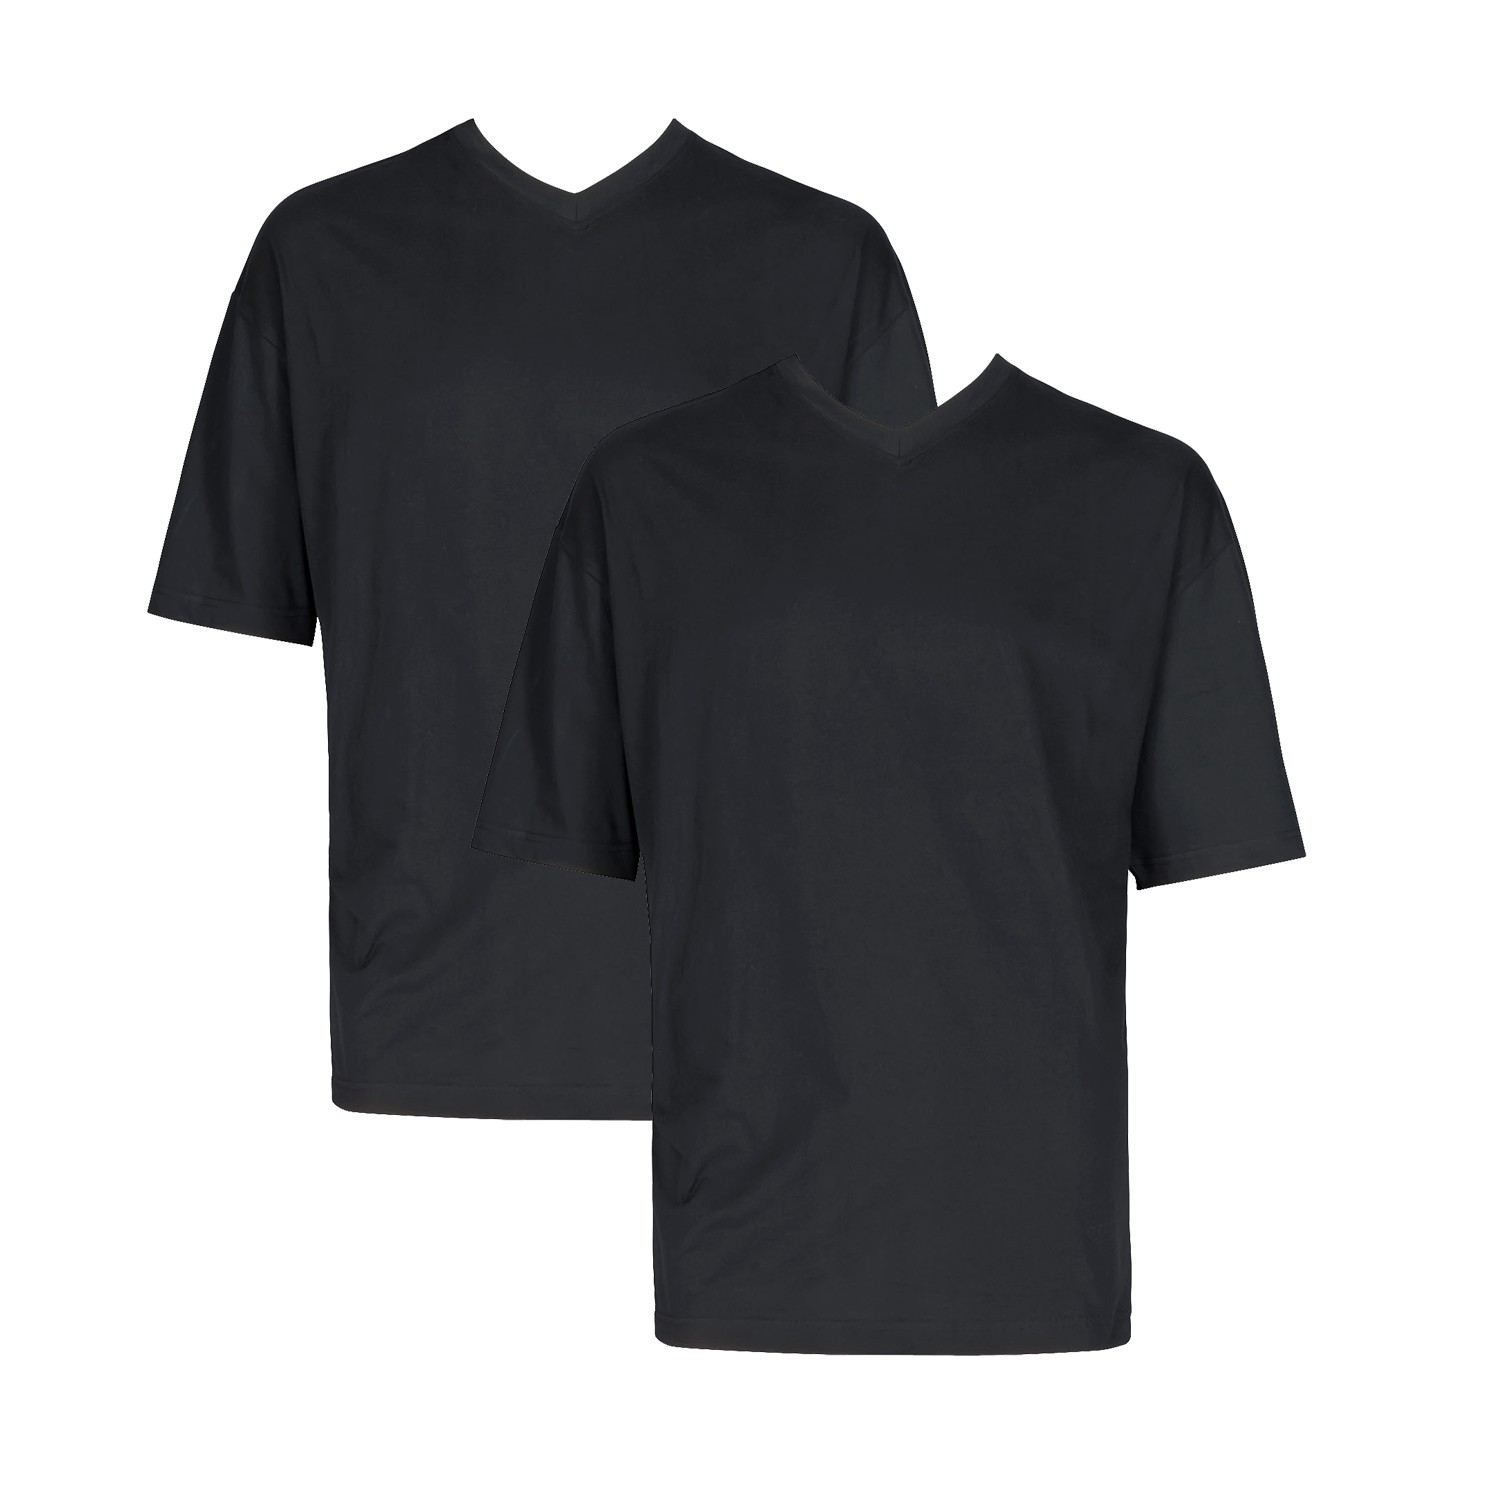 doppelpack maverick v t shirt in schwarz bis 10xl von adamo t shirts. Black Bedroom Furniture Sets. Home Design Ideas